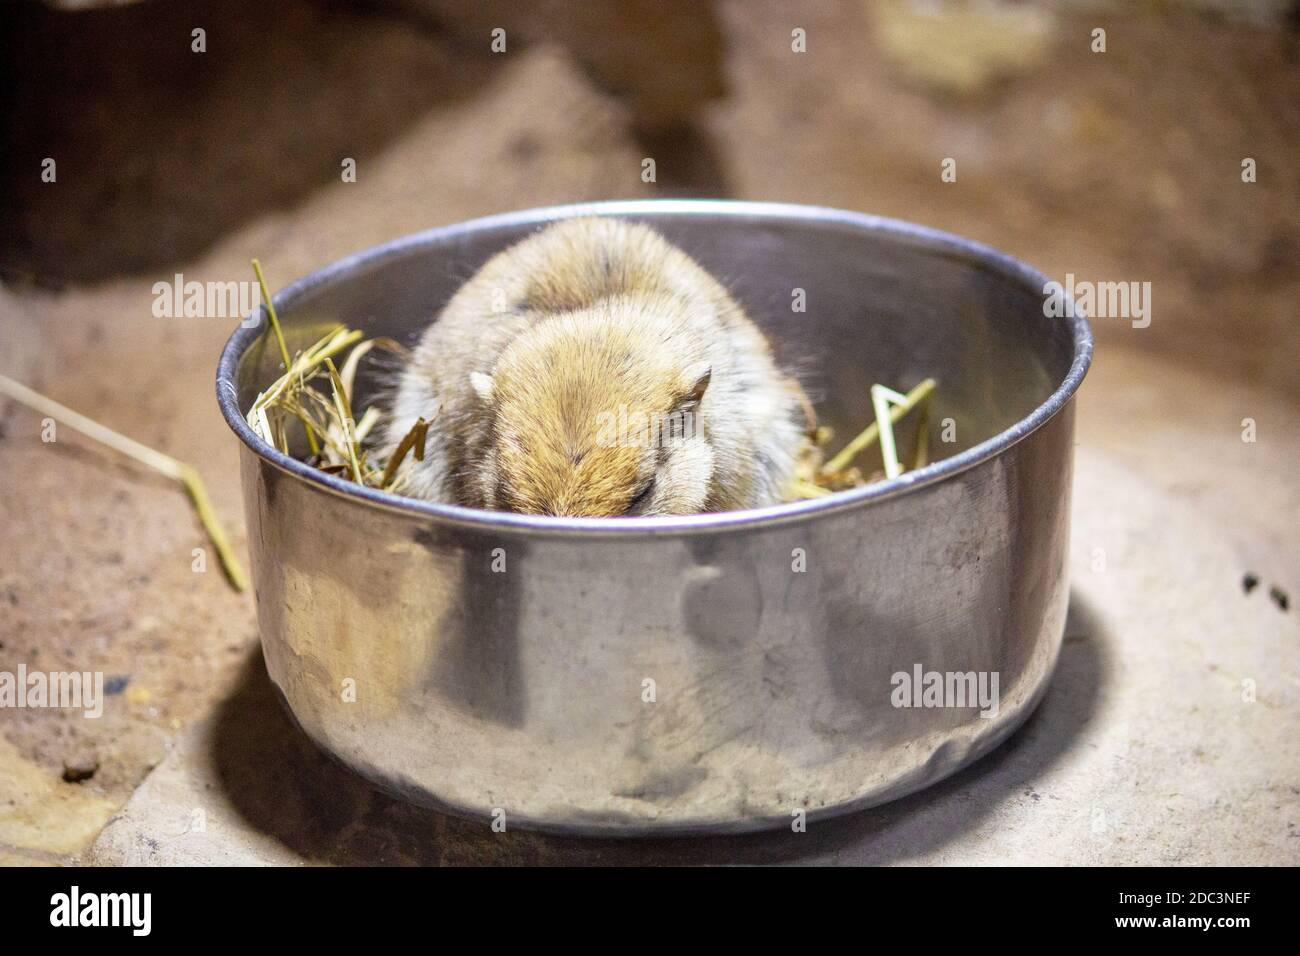 View of a fat sand rat while eating in its free bowl, Psammomys obesus Stock Photo